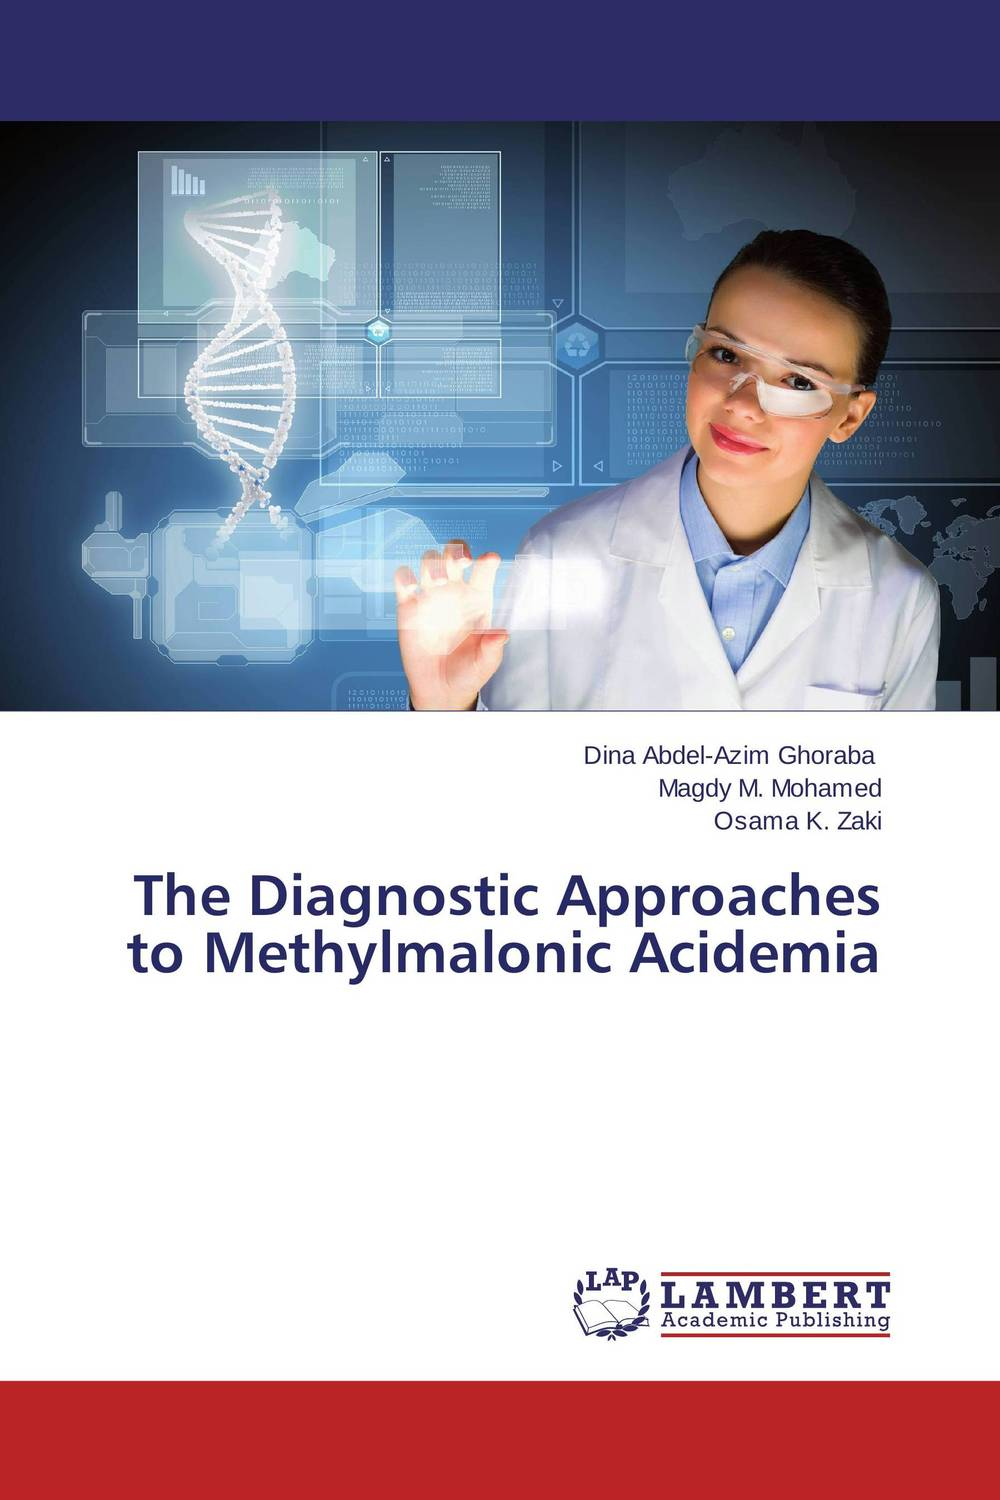 The Diagnostic Approaches to Methylmalonic Acidemia